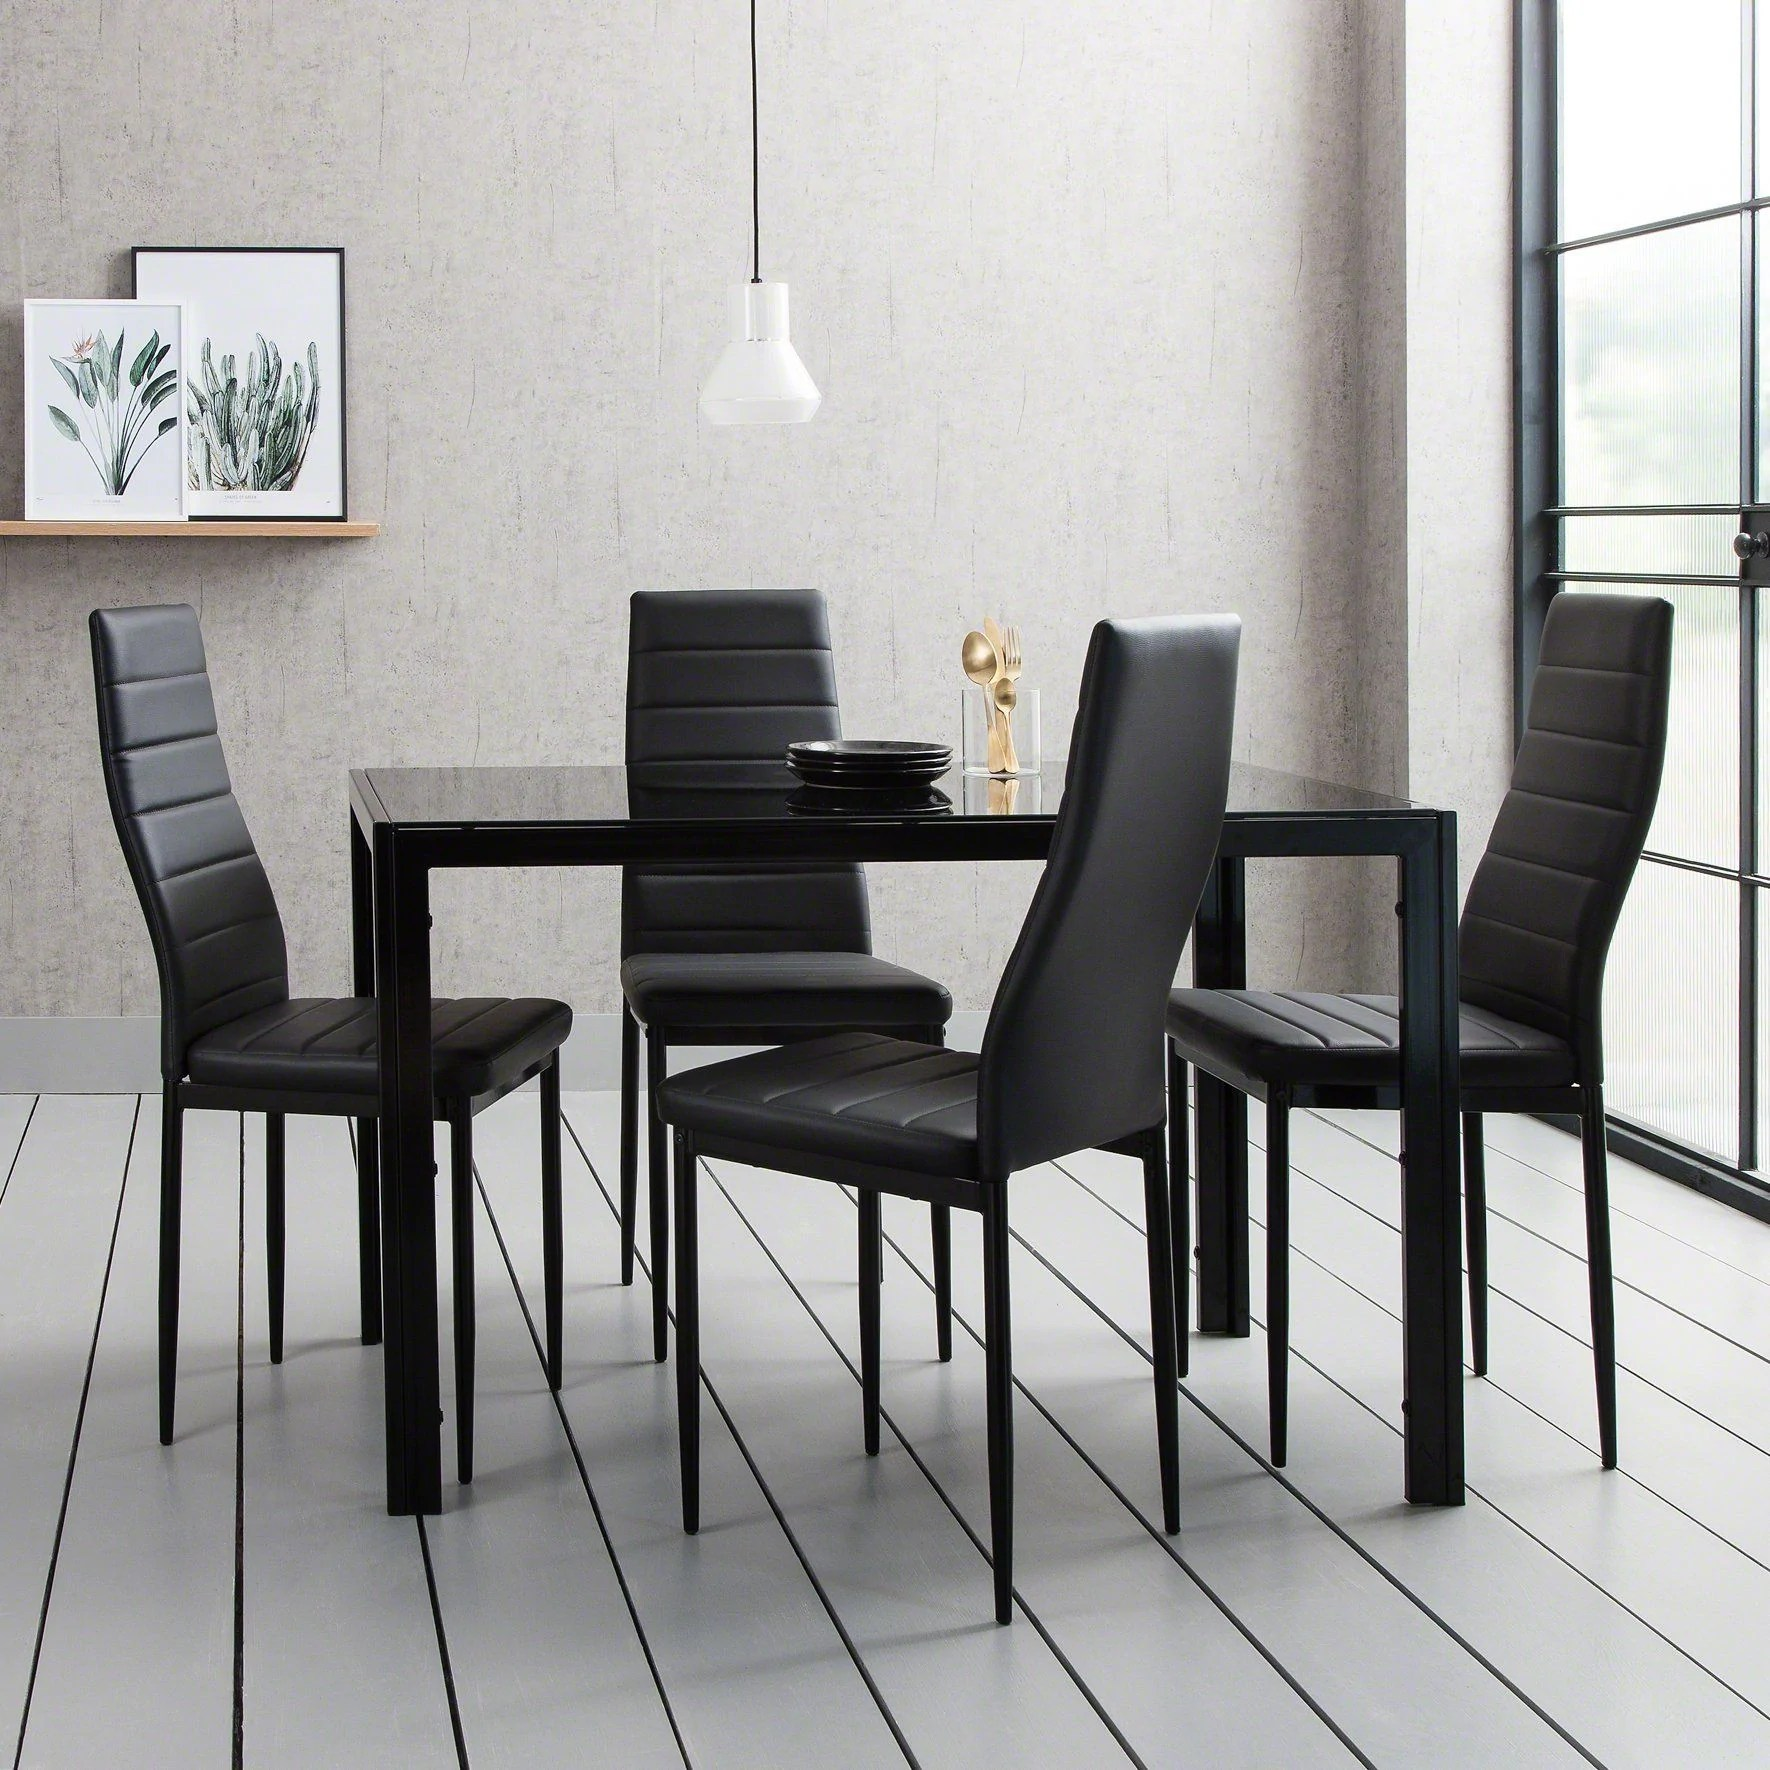 Glass Dining Table Set With 4 Black Chairs Set Delivery On Or Before Laura James